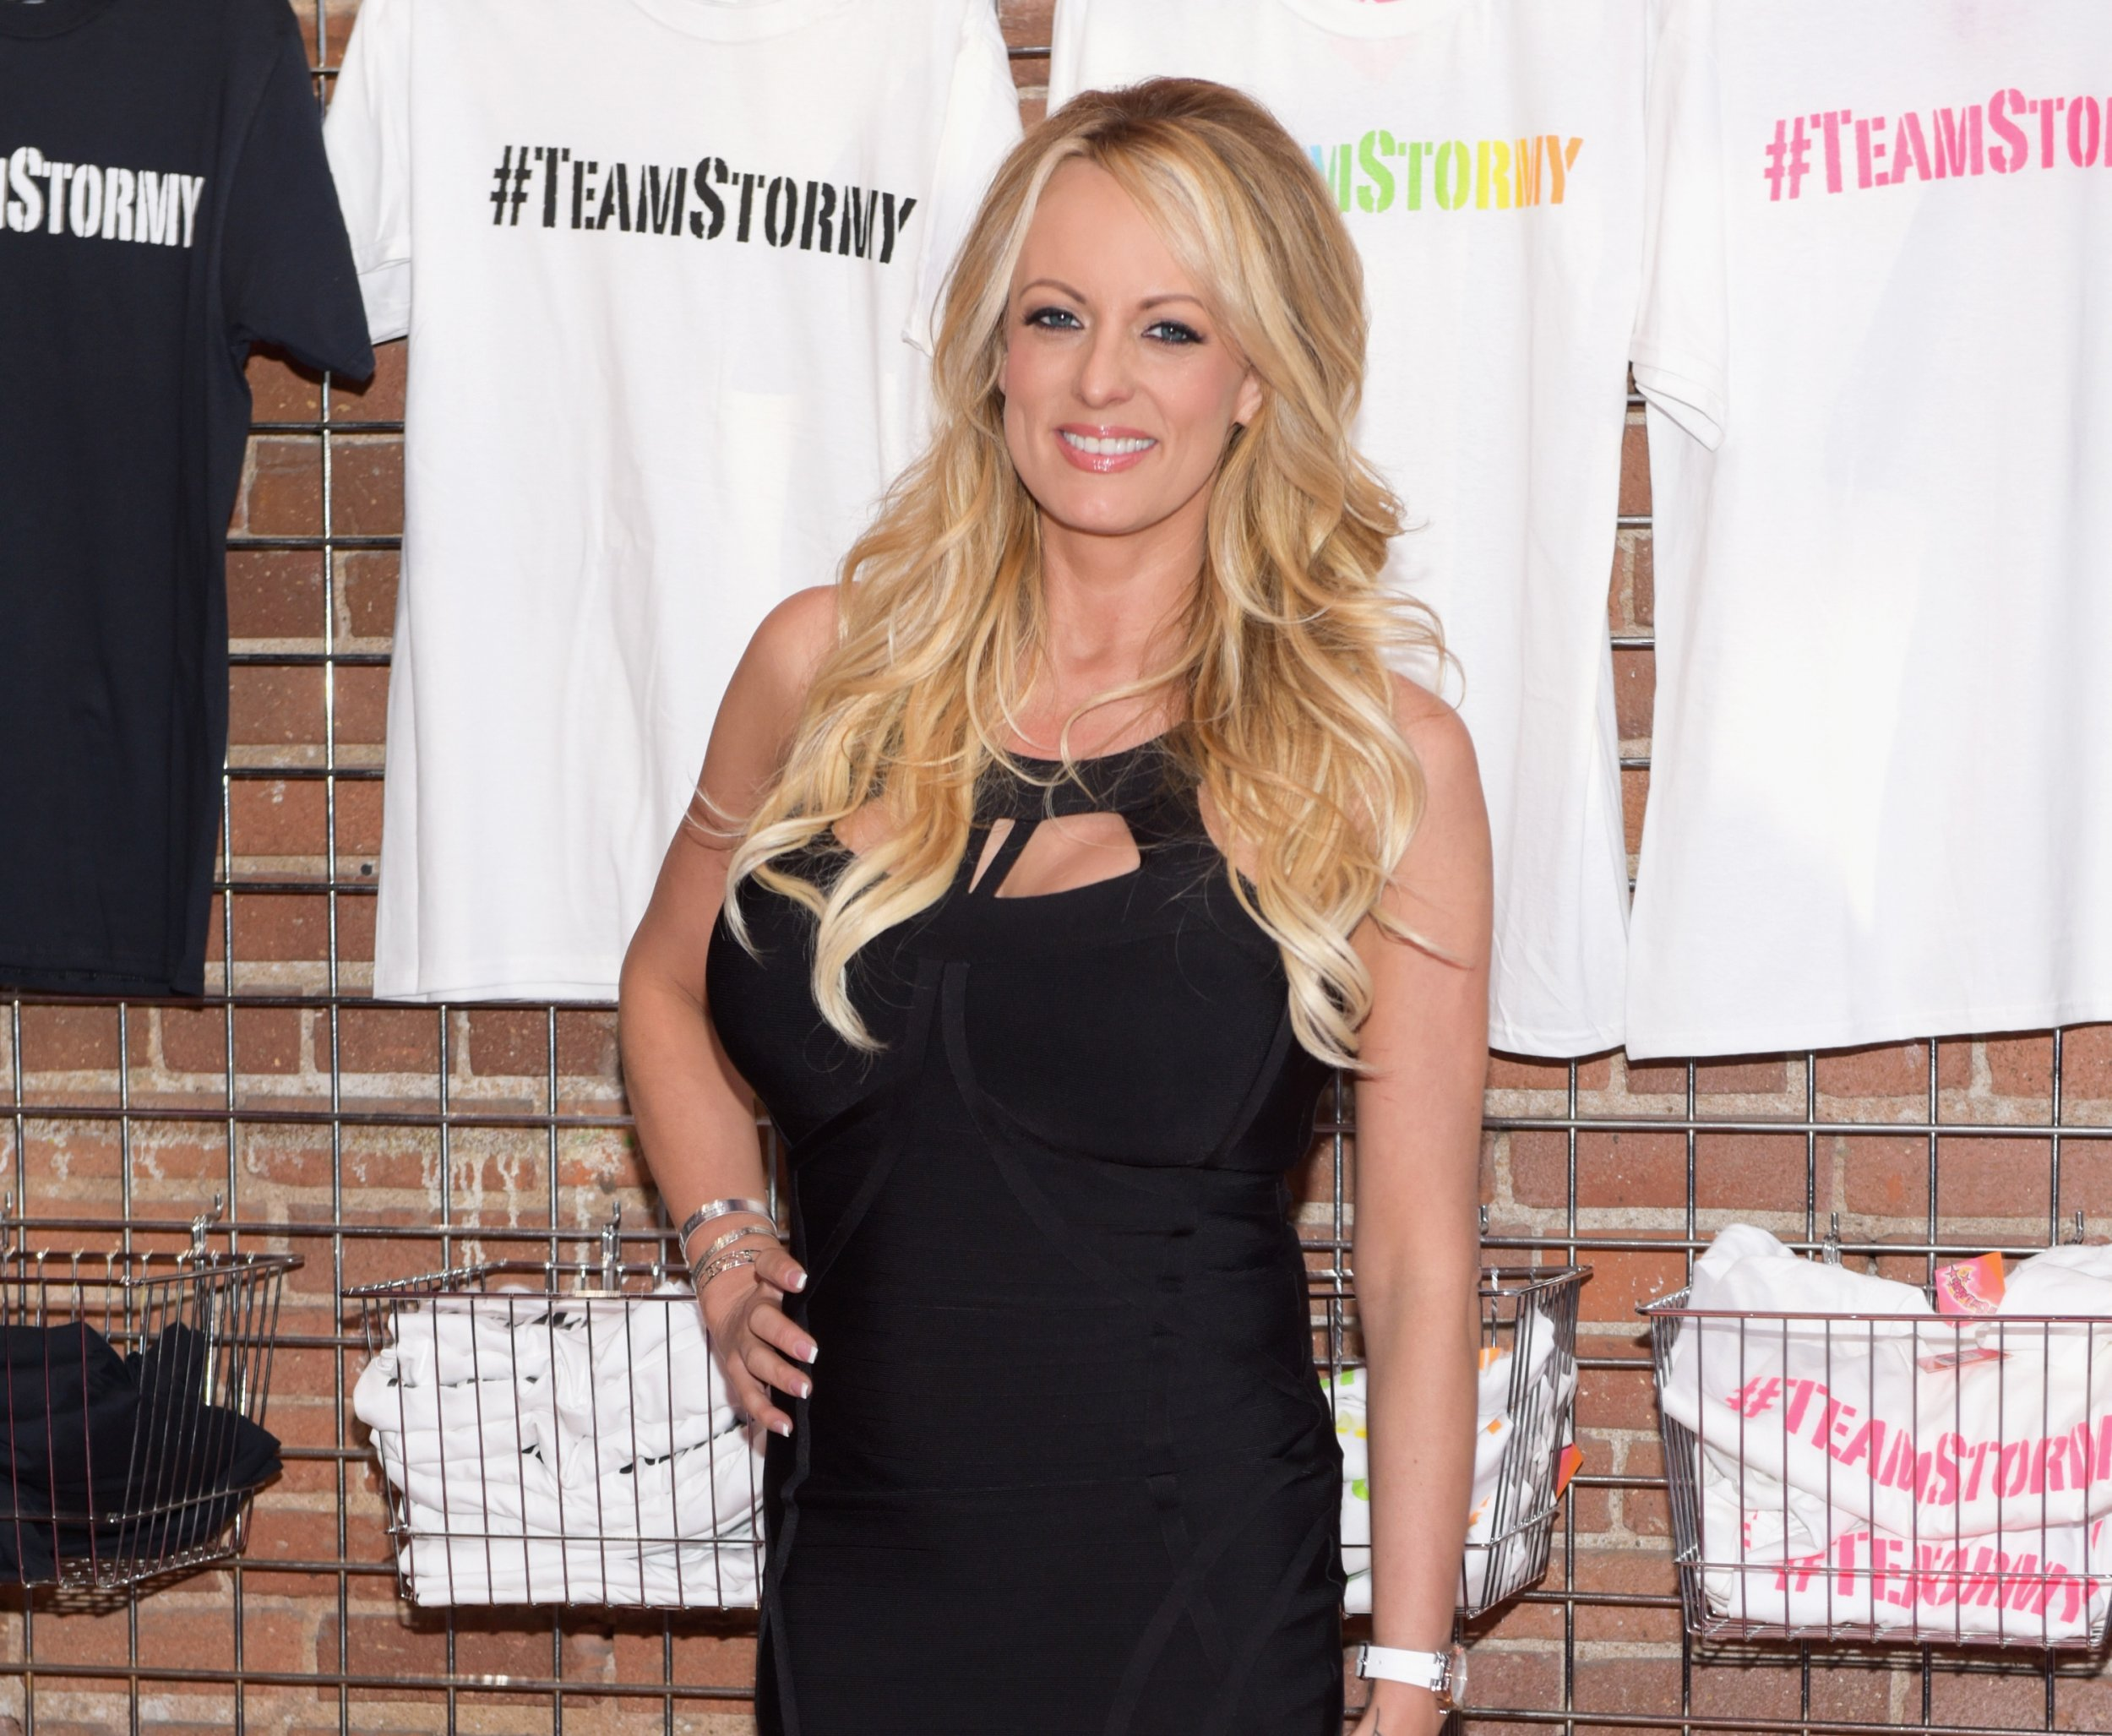 Americans believe Stormy Daniels more than Donald Trump, poll shows